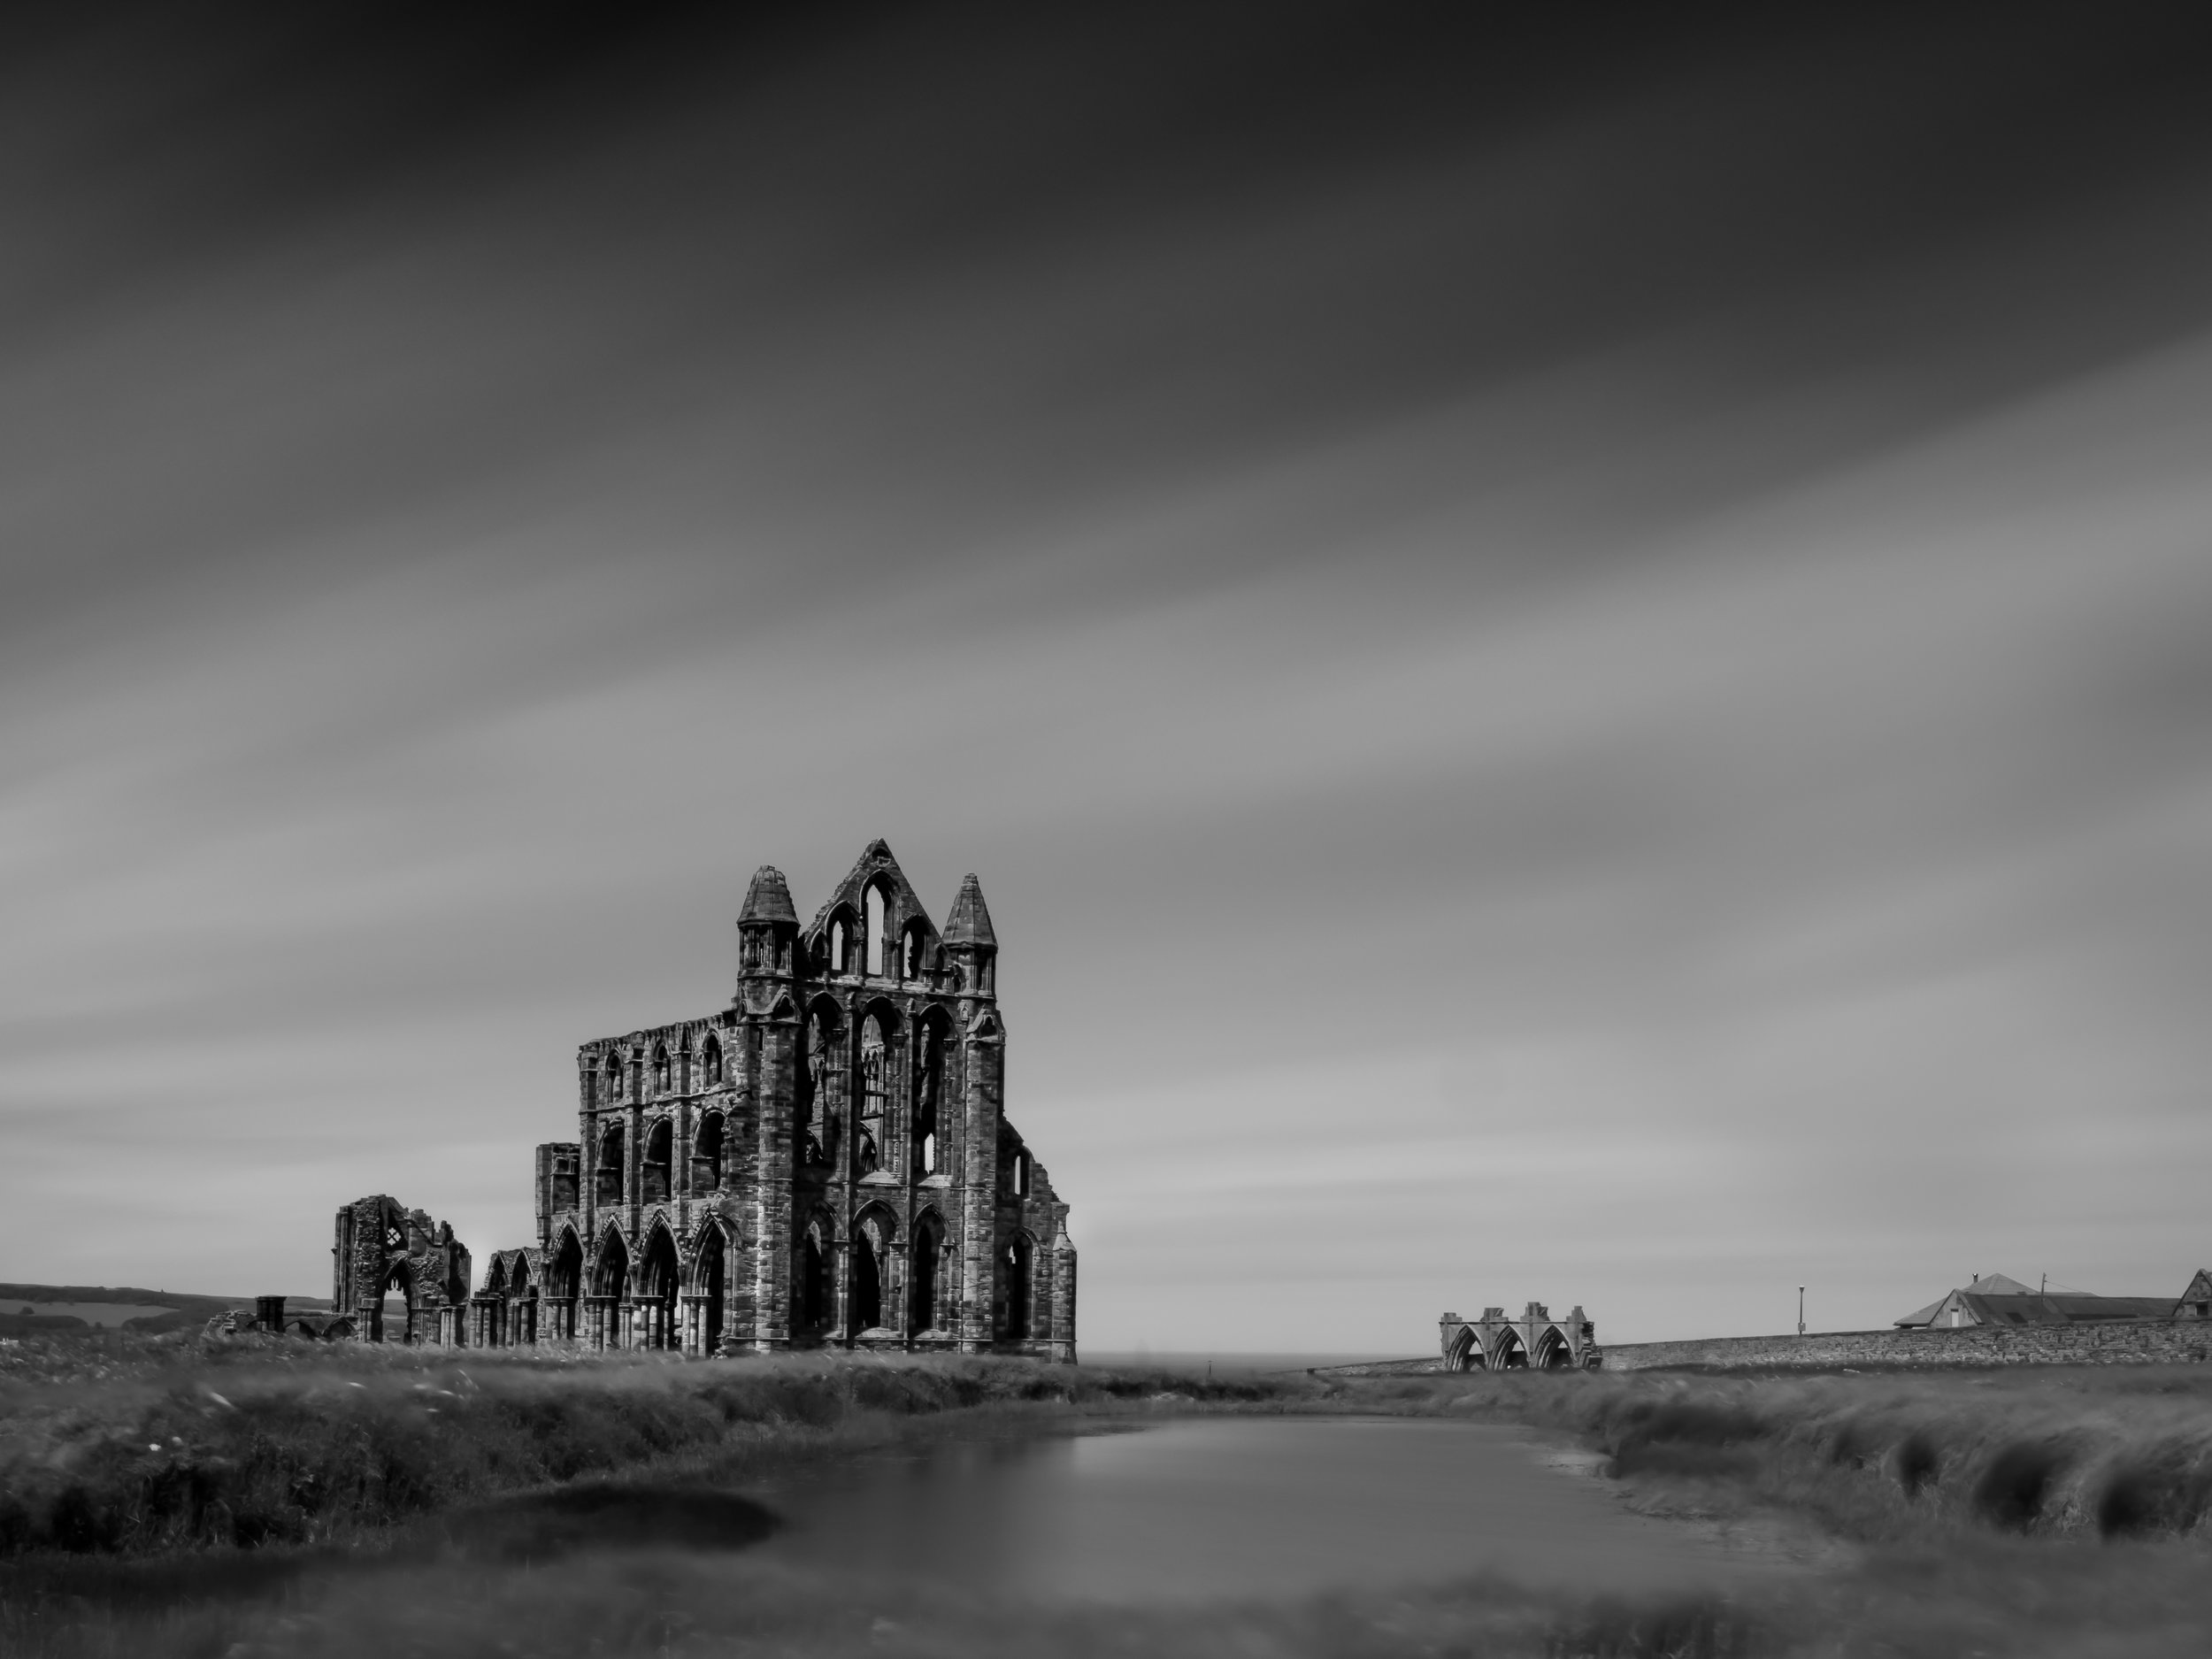 Whitby Abbey.... achieved with Olympus OMD em5 mk2 9-18mm lens, Kase 10 stop filter, 5 min 22 second exposure at f11 with The Alta pro 2 + 263Ap tripod and an umbrella!